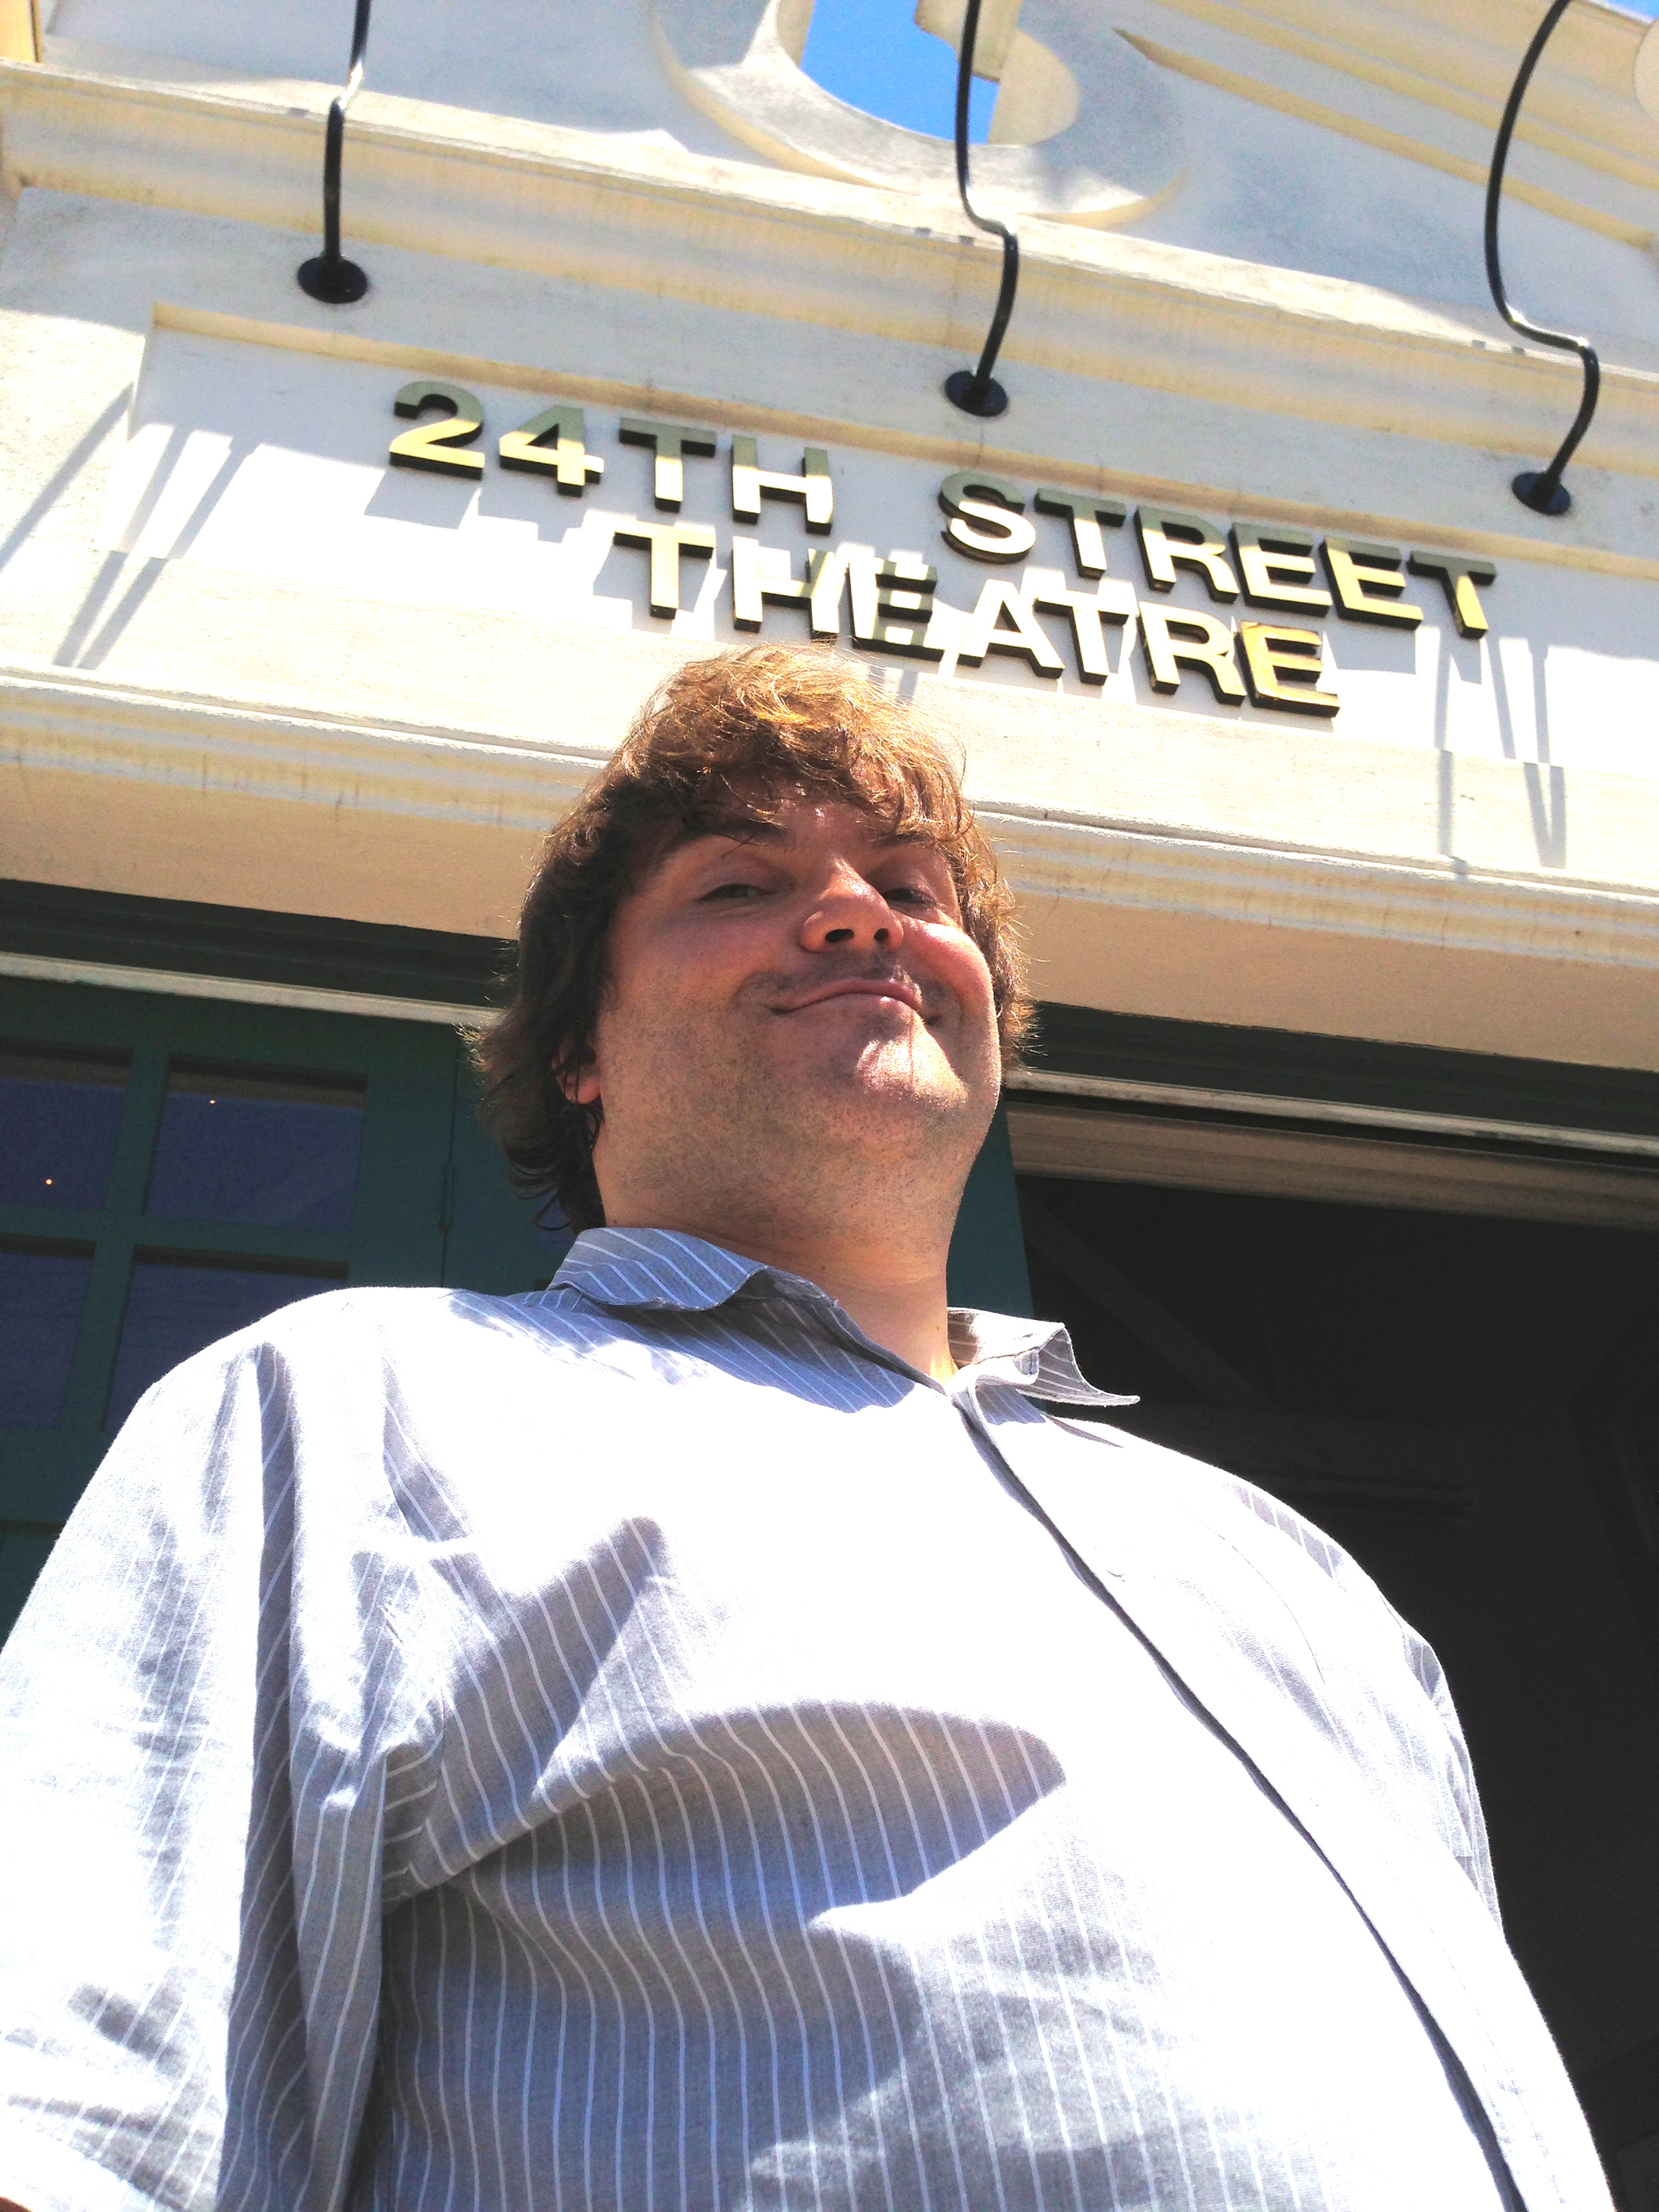 Photo Provided by 24th Street Theatre